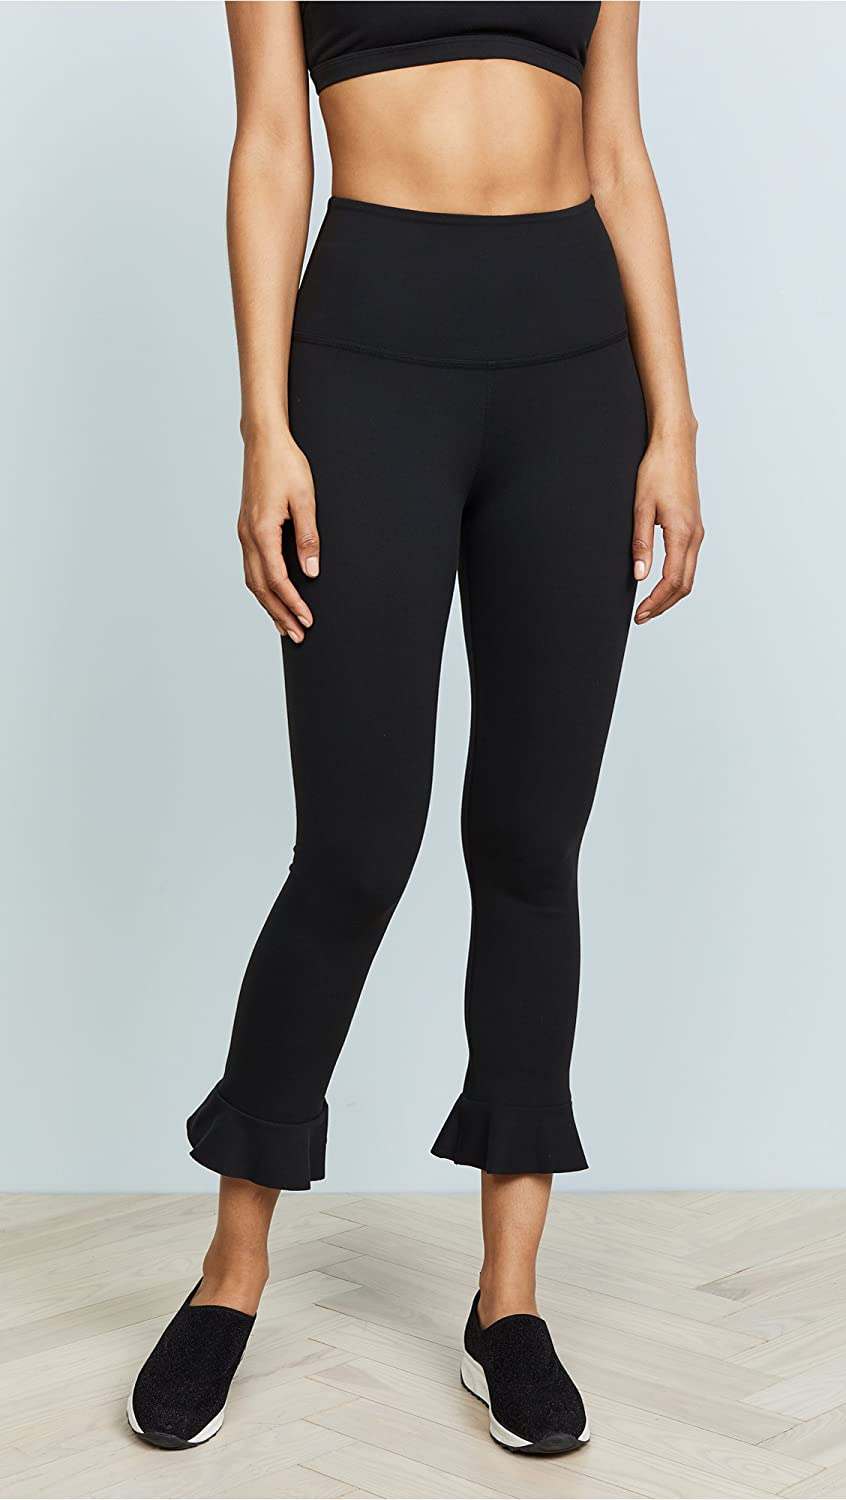 2b2bd0de37 Beyond Yoga Women's Frill Seeker Leggings at Amazon Women's Clothing store: